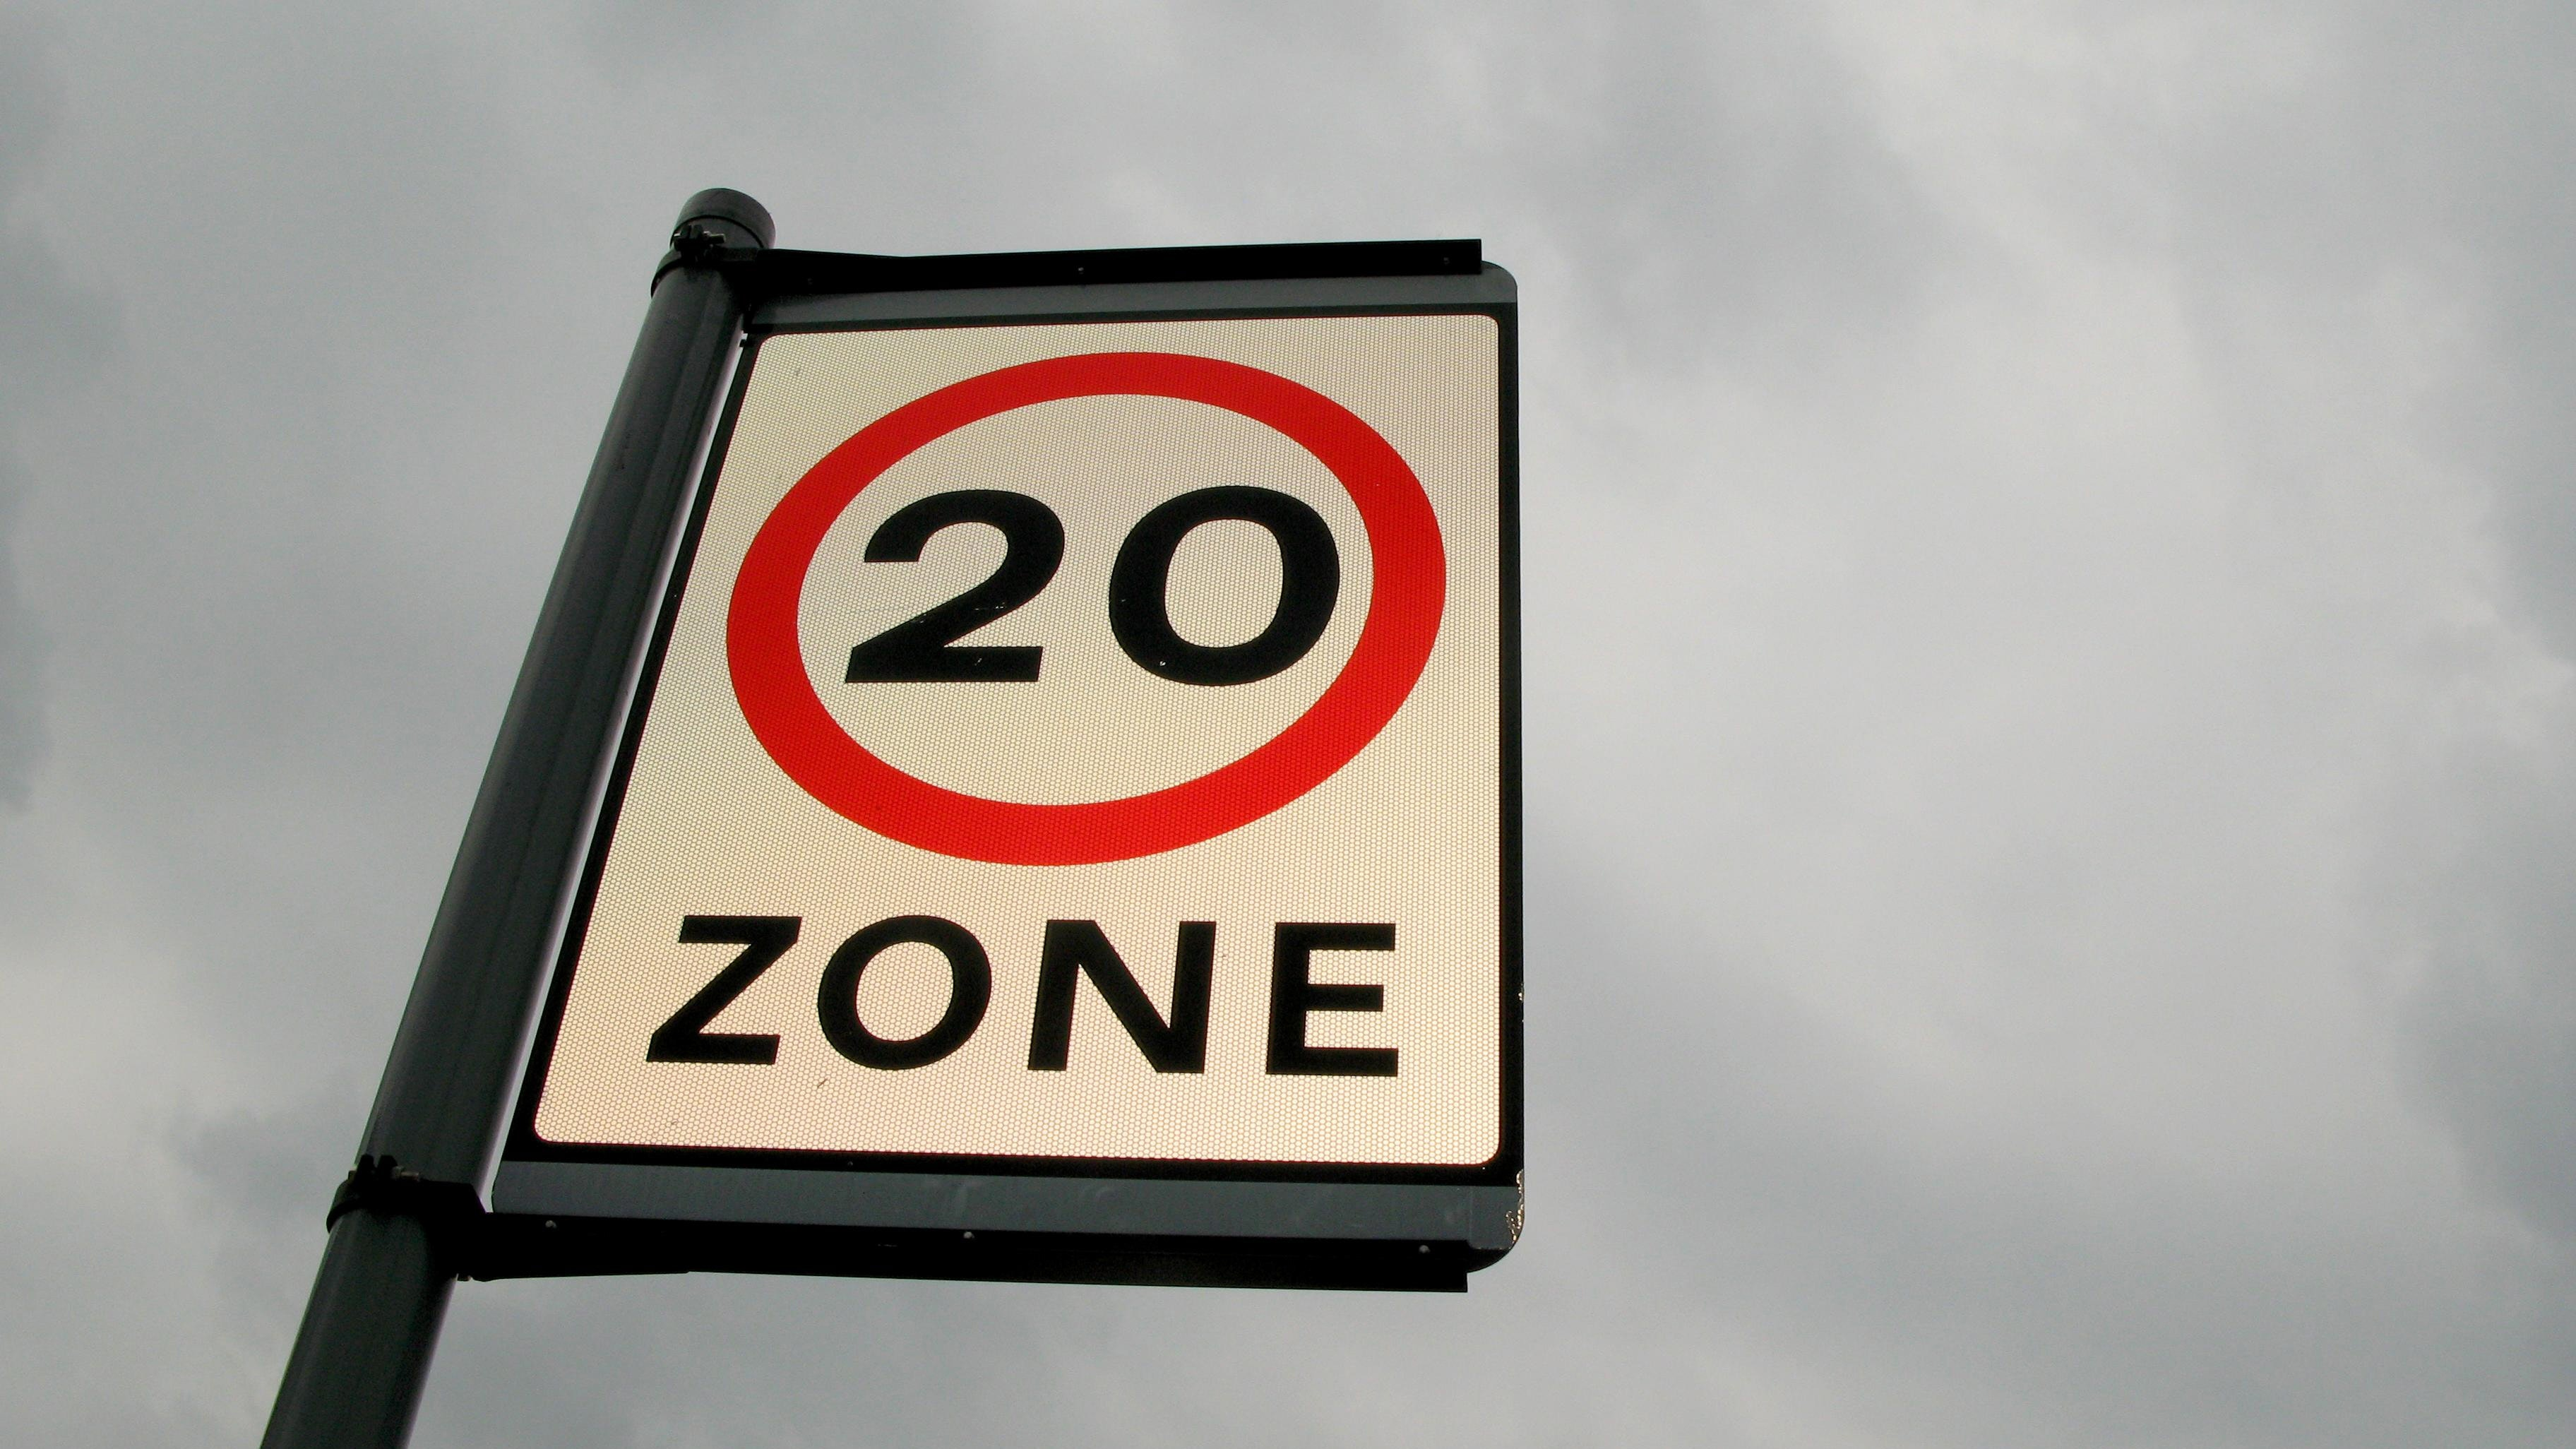 UK set to adopt new EU speed-limiting rules for cars - Tech